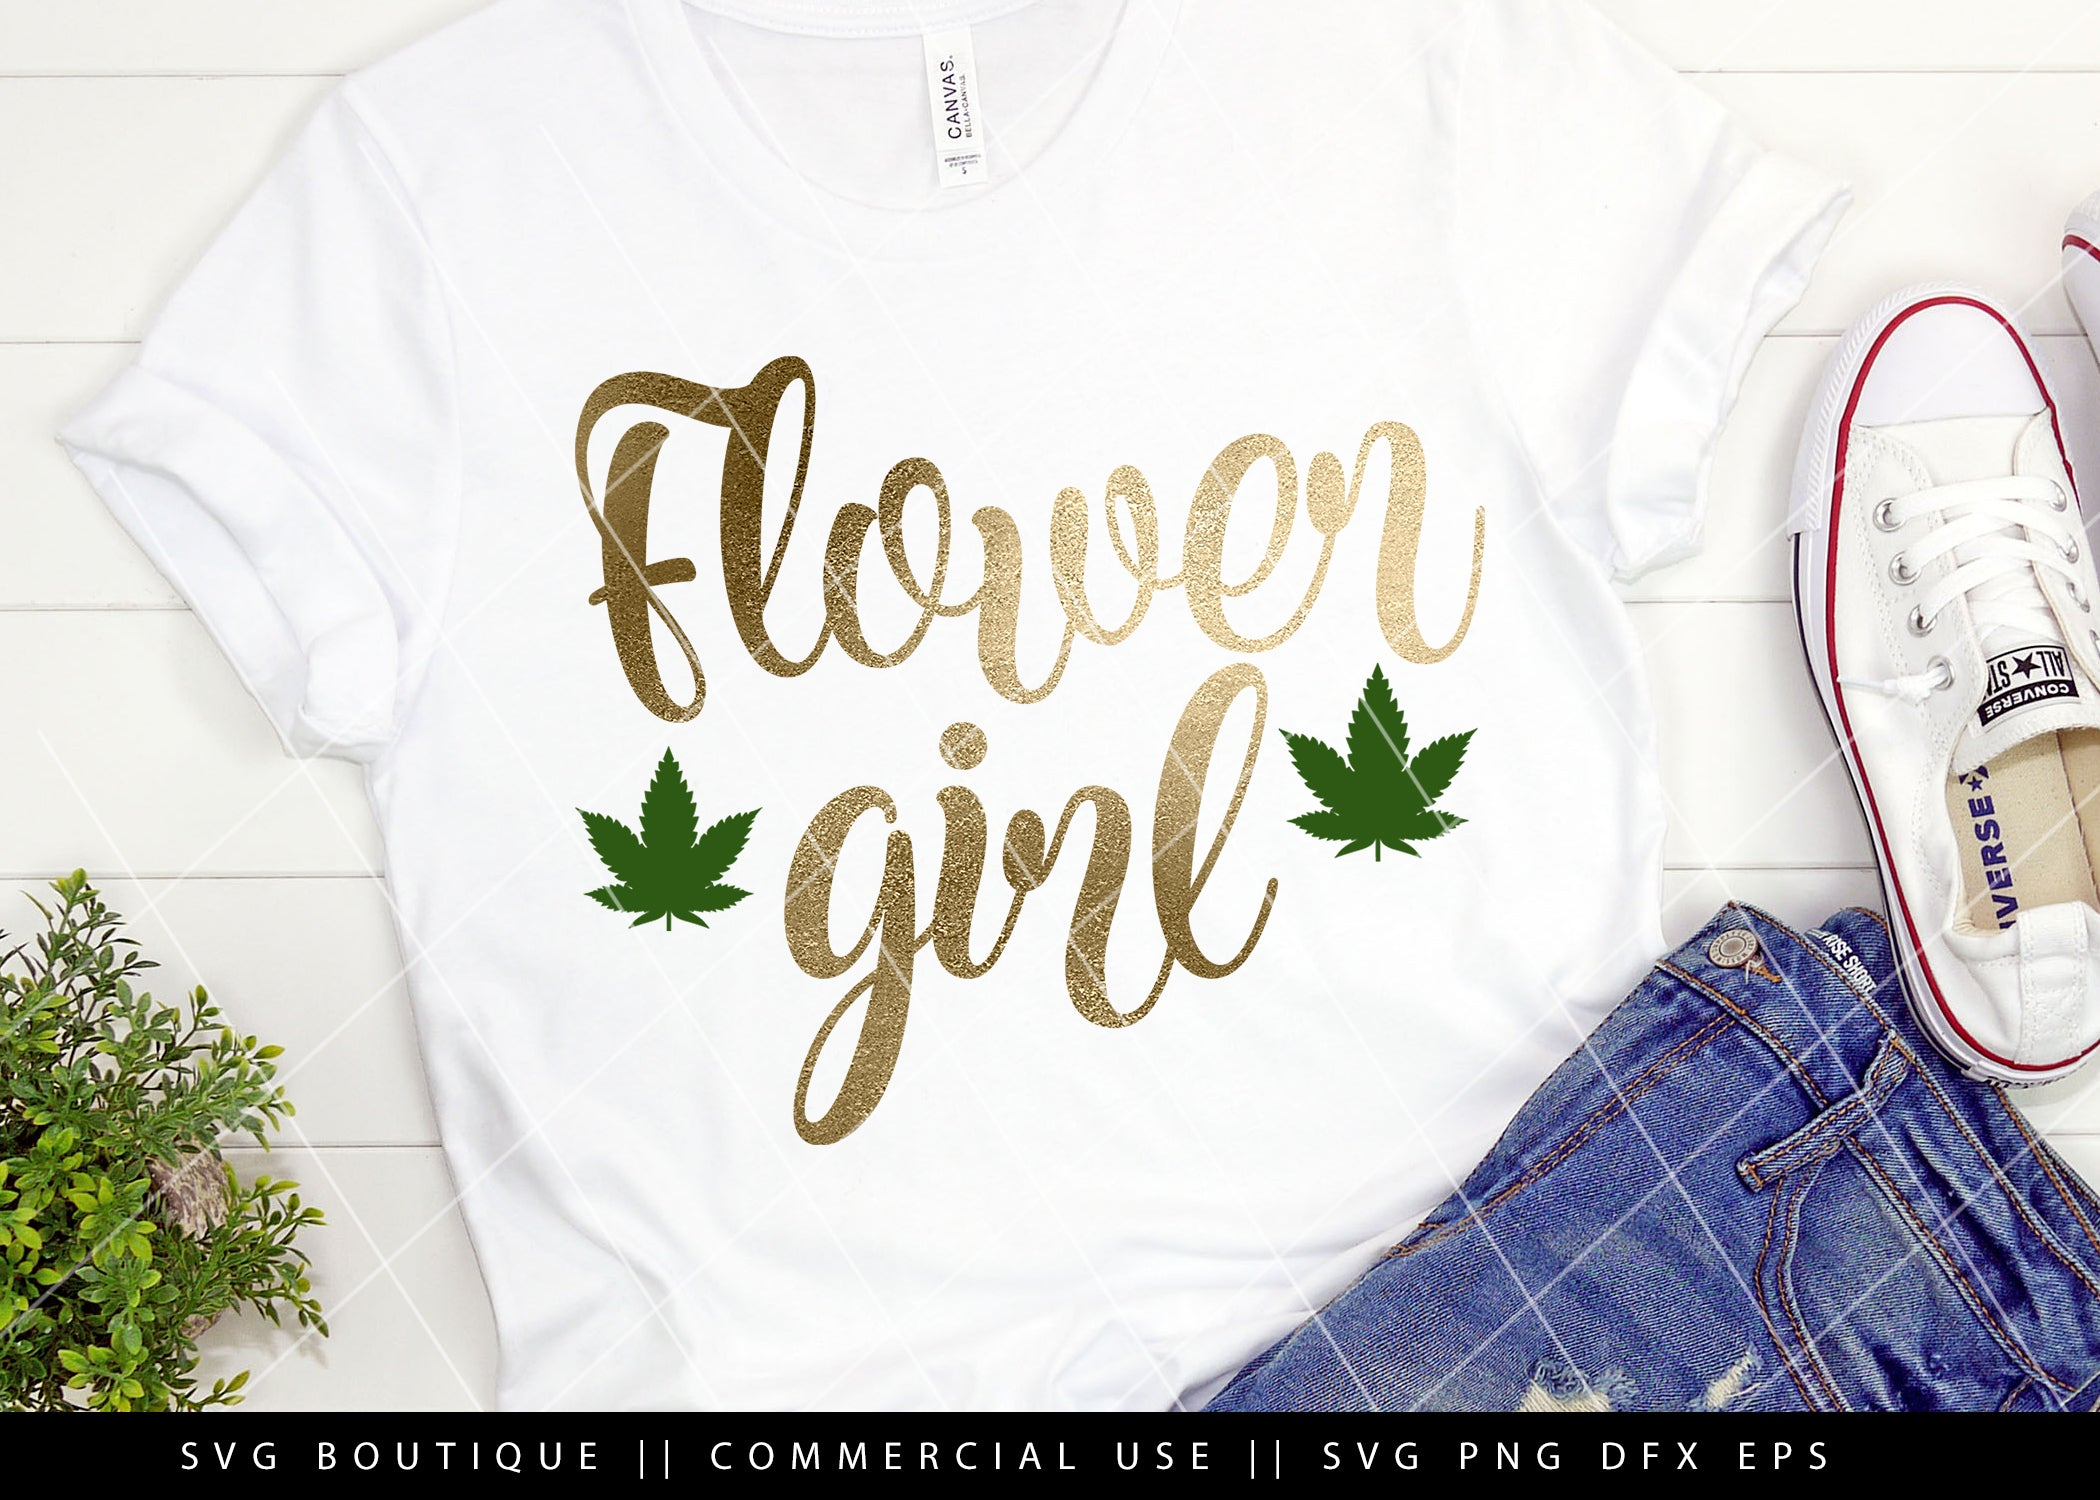 Flower Girl Weed Dope Svg Files Cut File For Silhouette And Cricut Svg Boutique